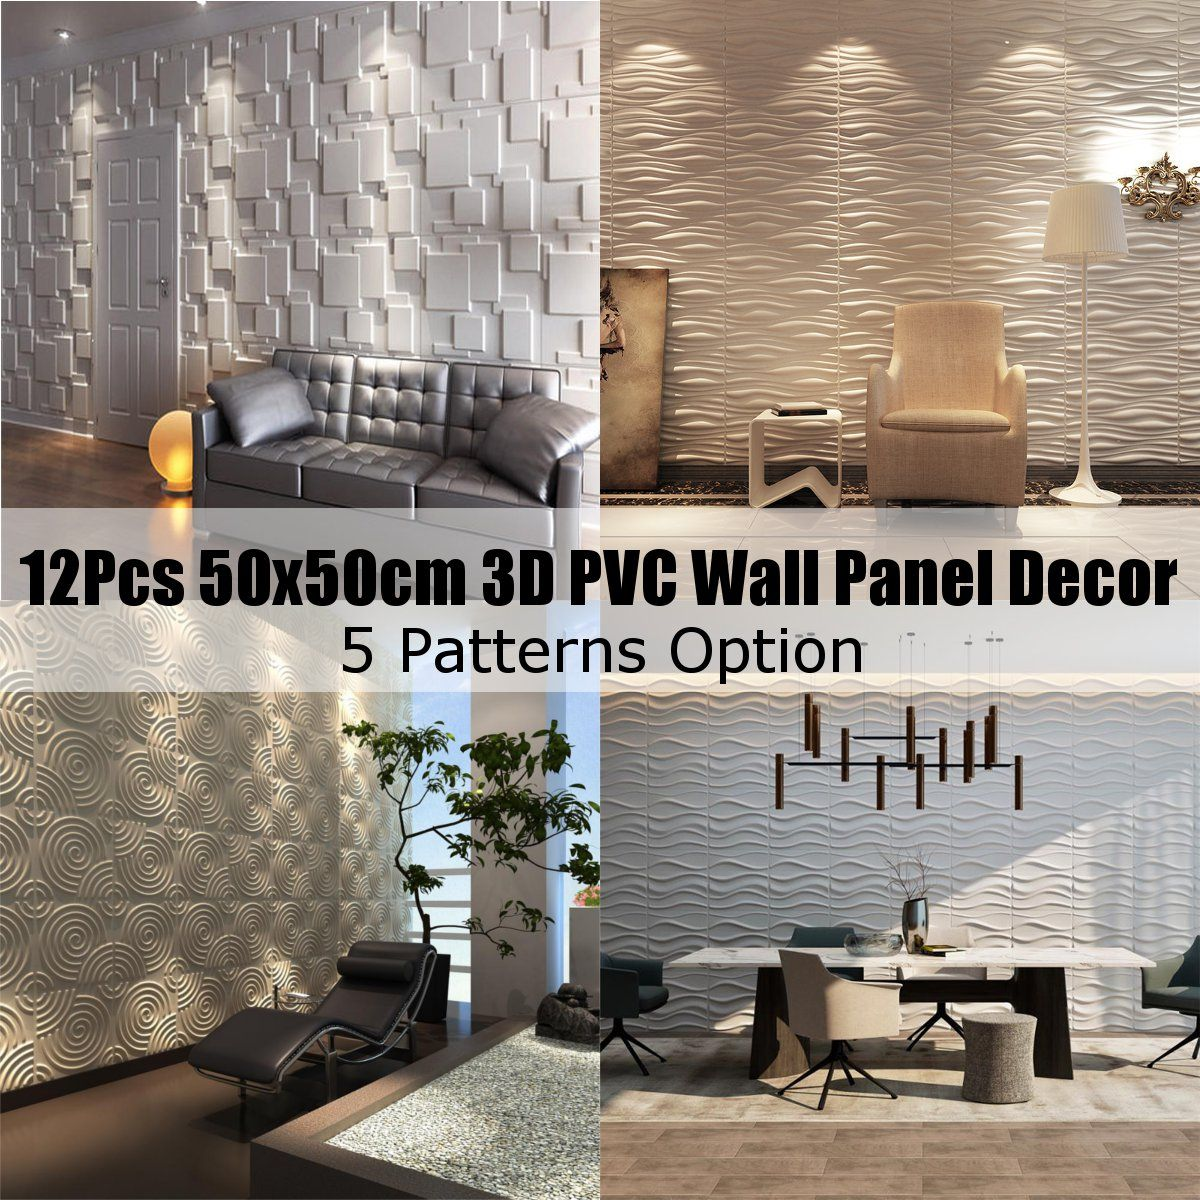 12PCS 3D PVC Wall Panel Flame Retardant Waterproof Wallpaper Living Room Decal Home Decor 50x50cm Embossed Wallpapers Stickers image